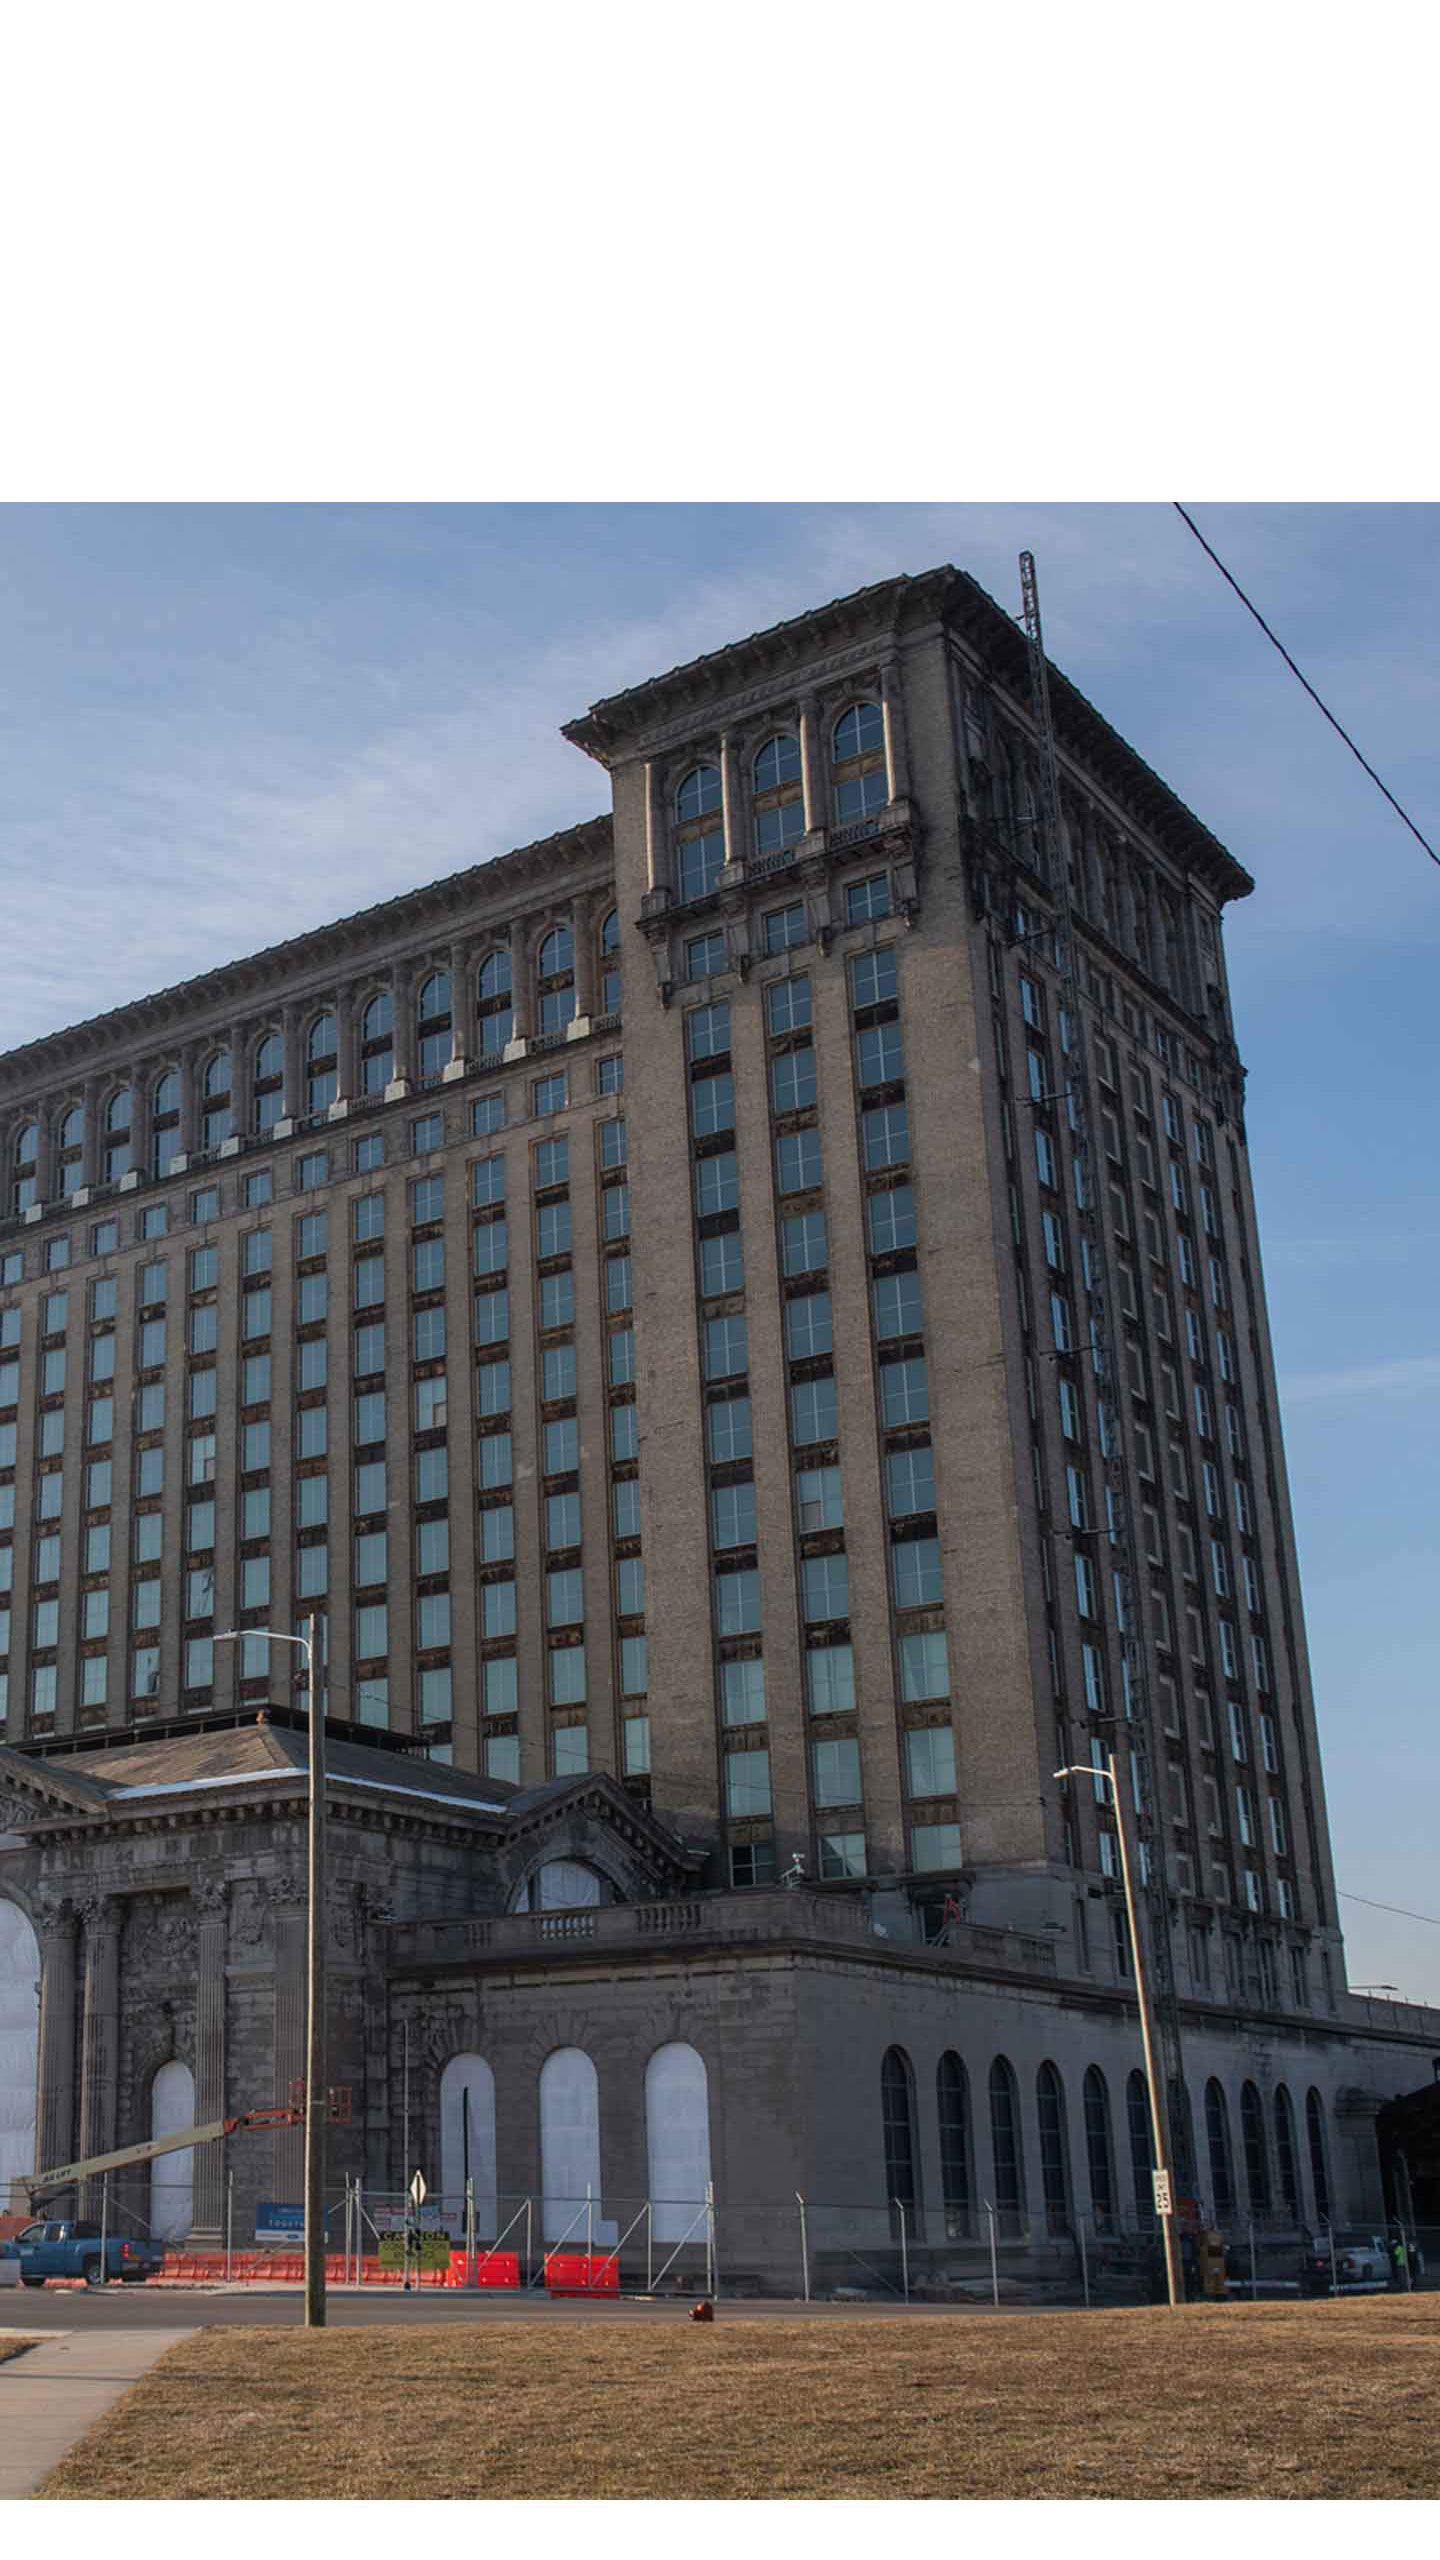 Michigan Central and the rebirth of Detroit